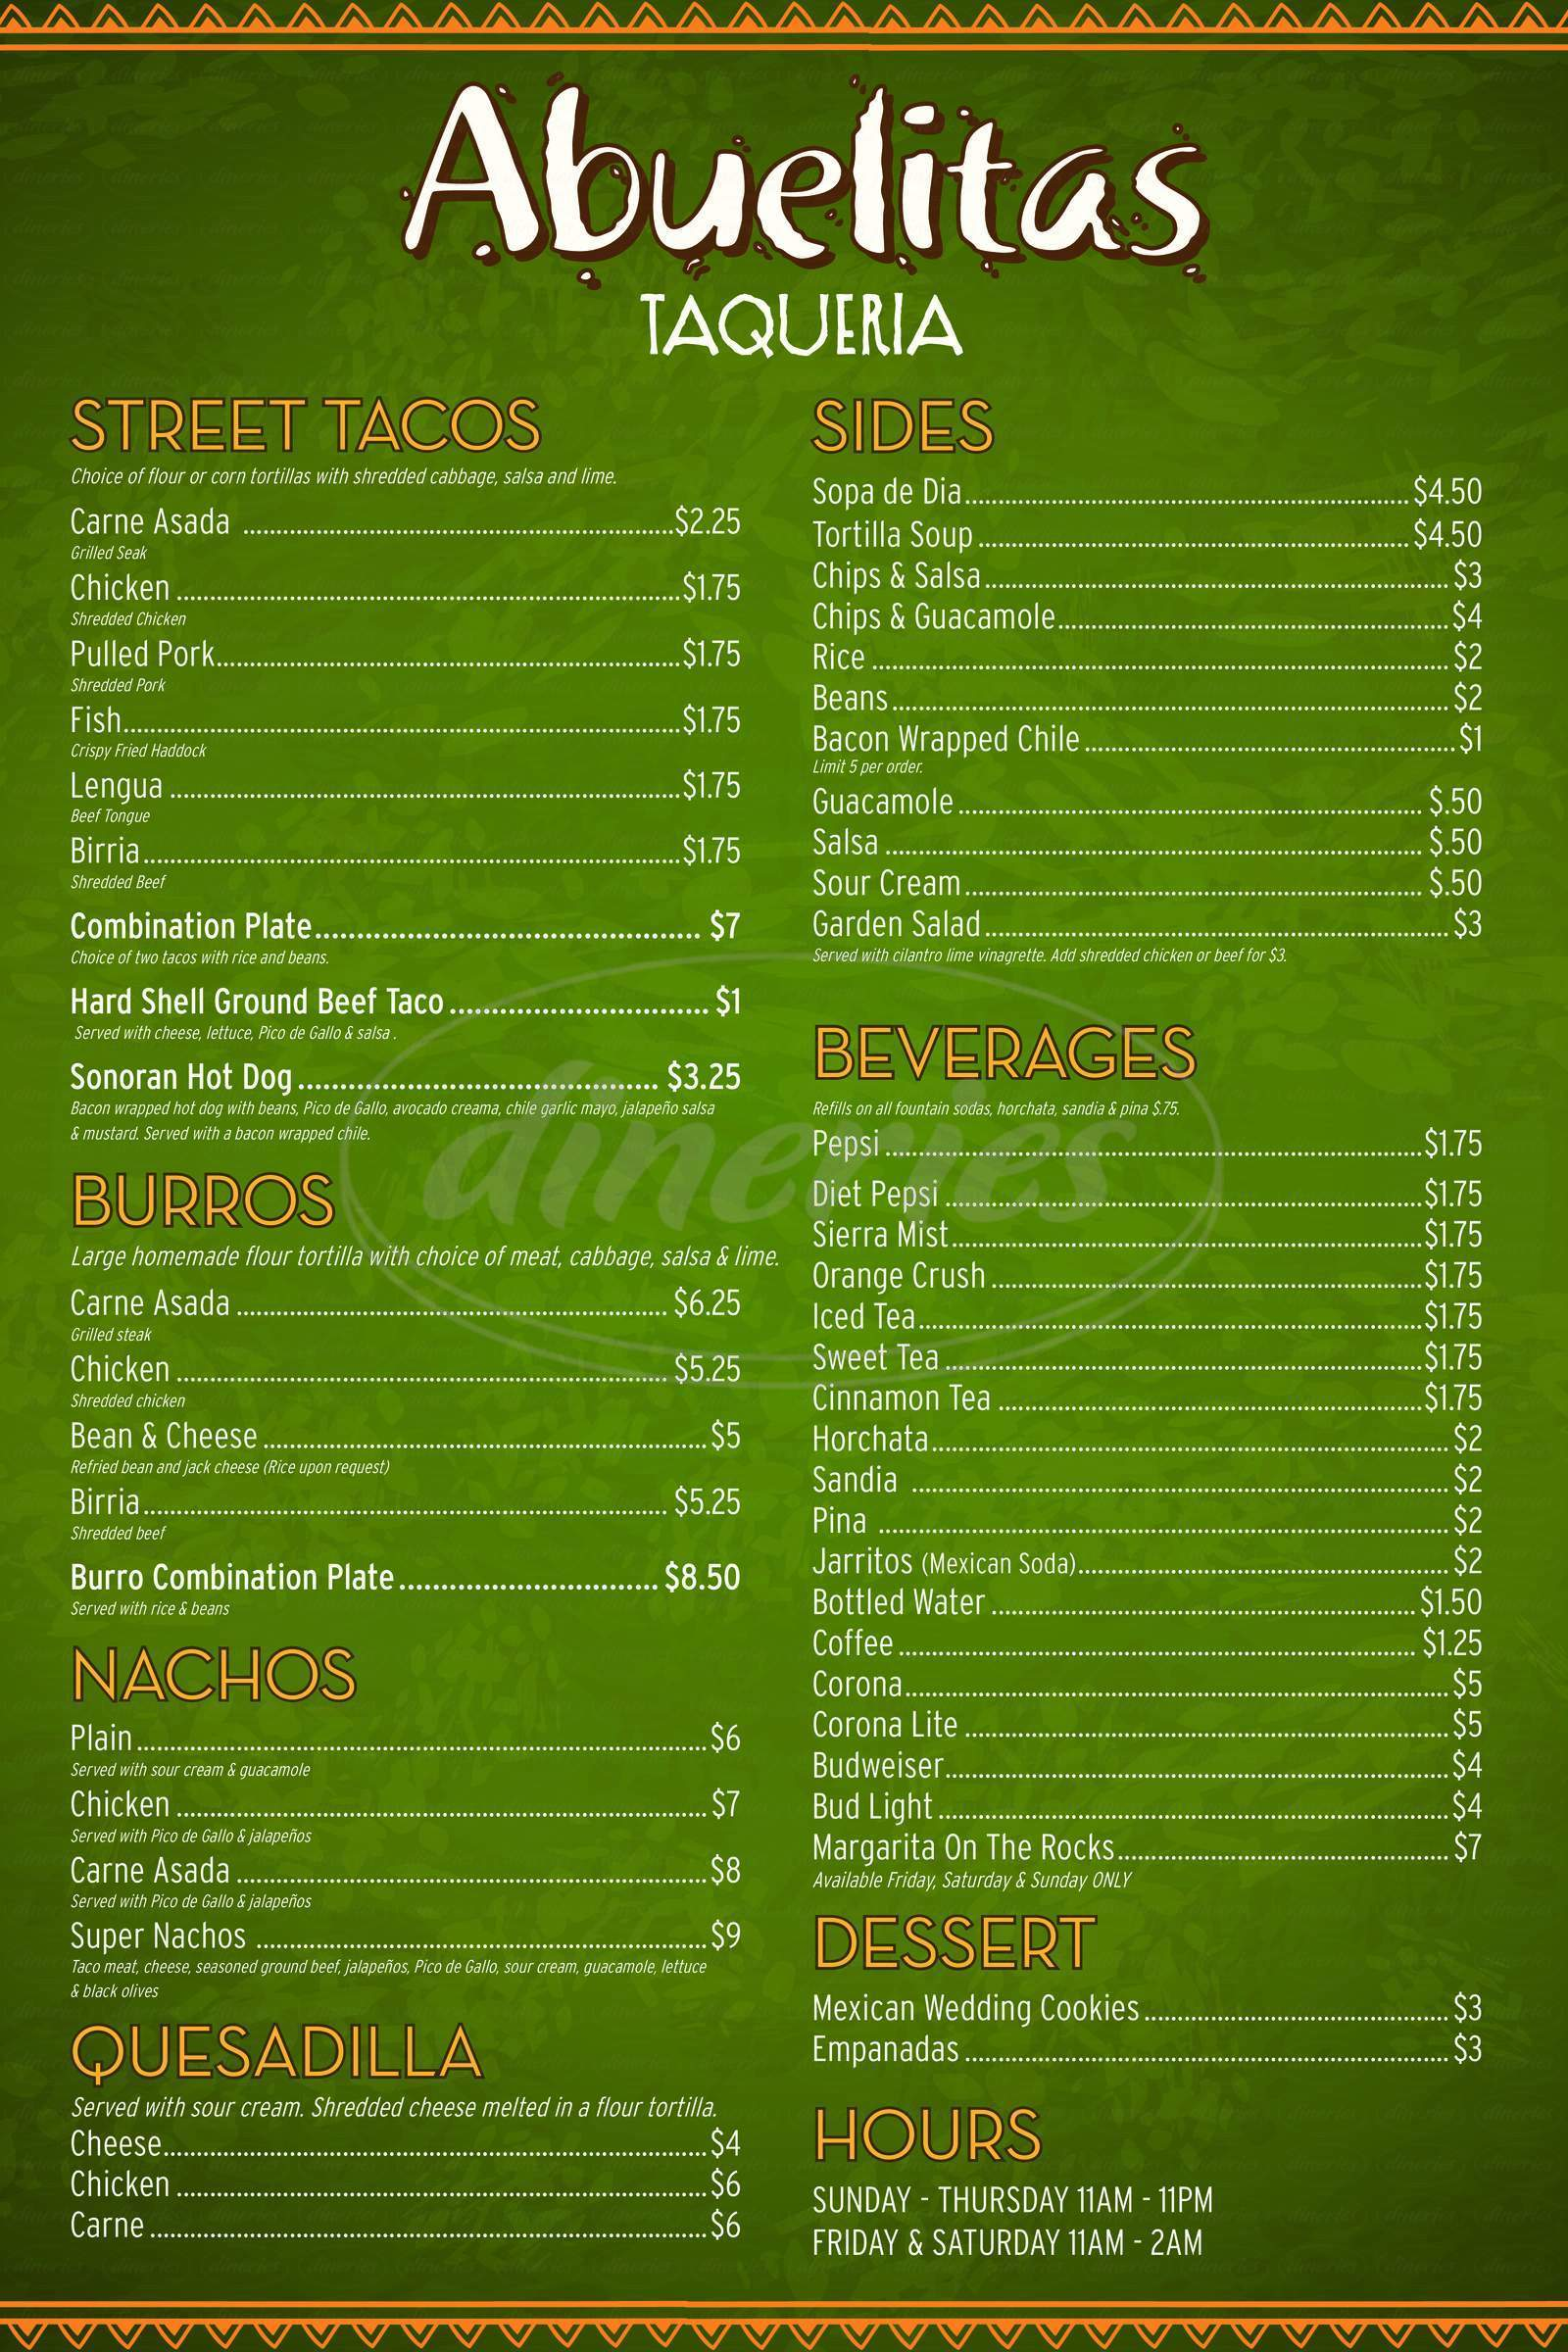 menu for Abuelitas Taqueria